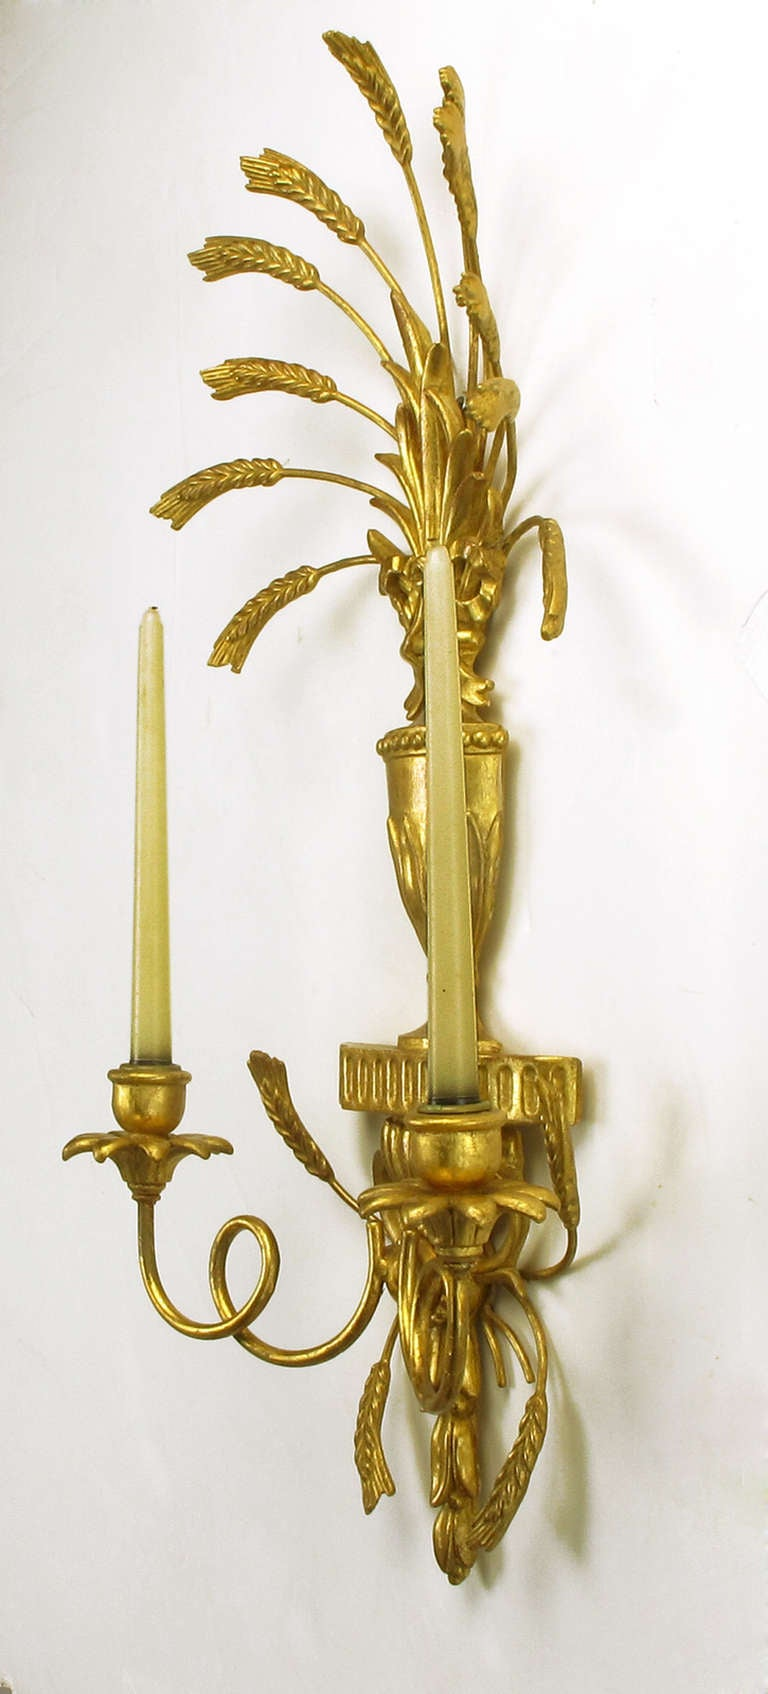 Pair of Italian Tole Gilt Metal and Resin Candelabra Wall Sconces For Sale 2